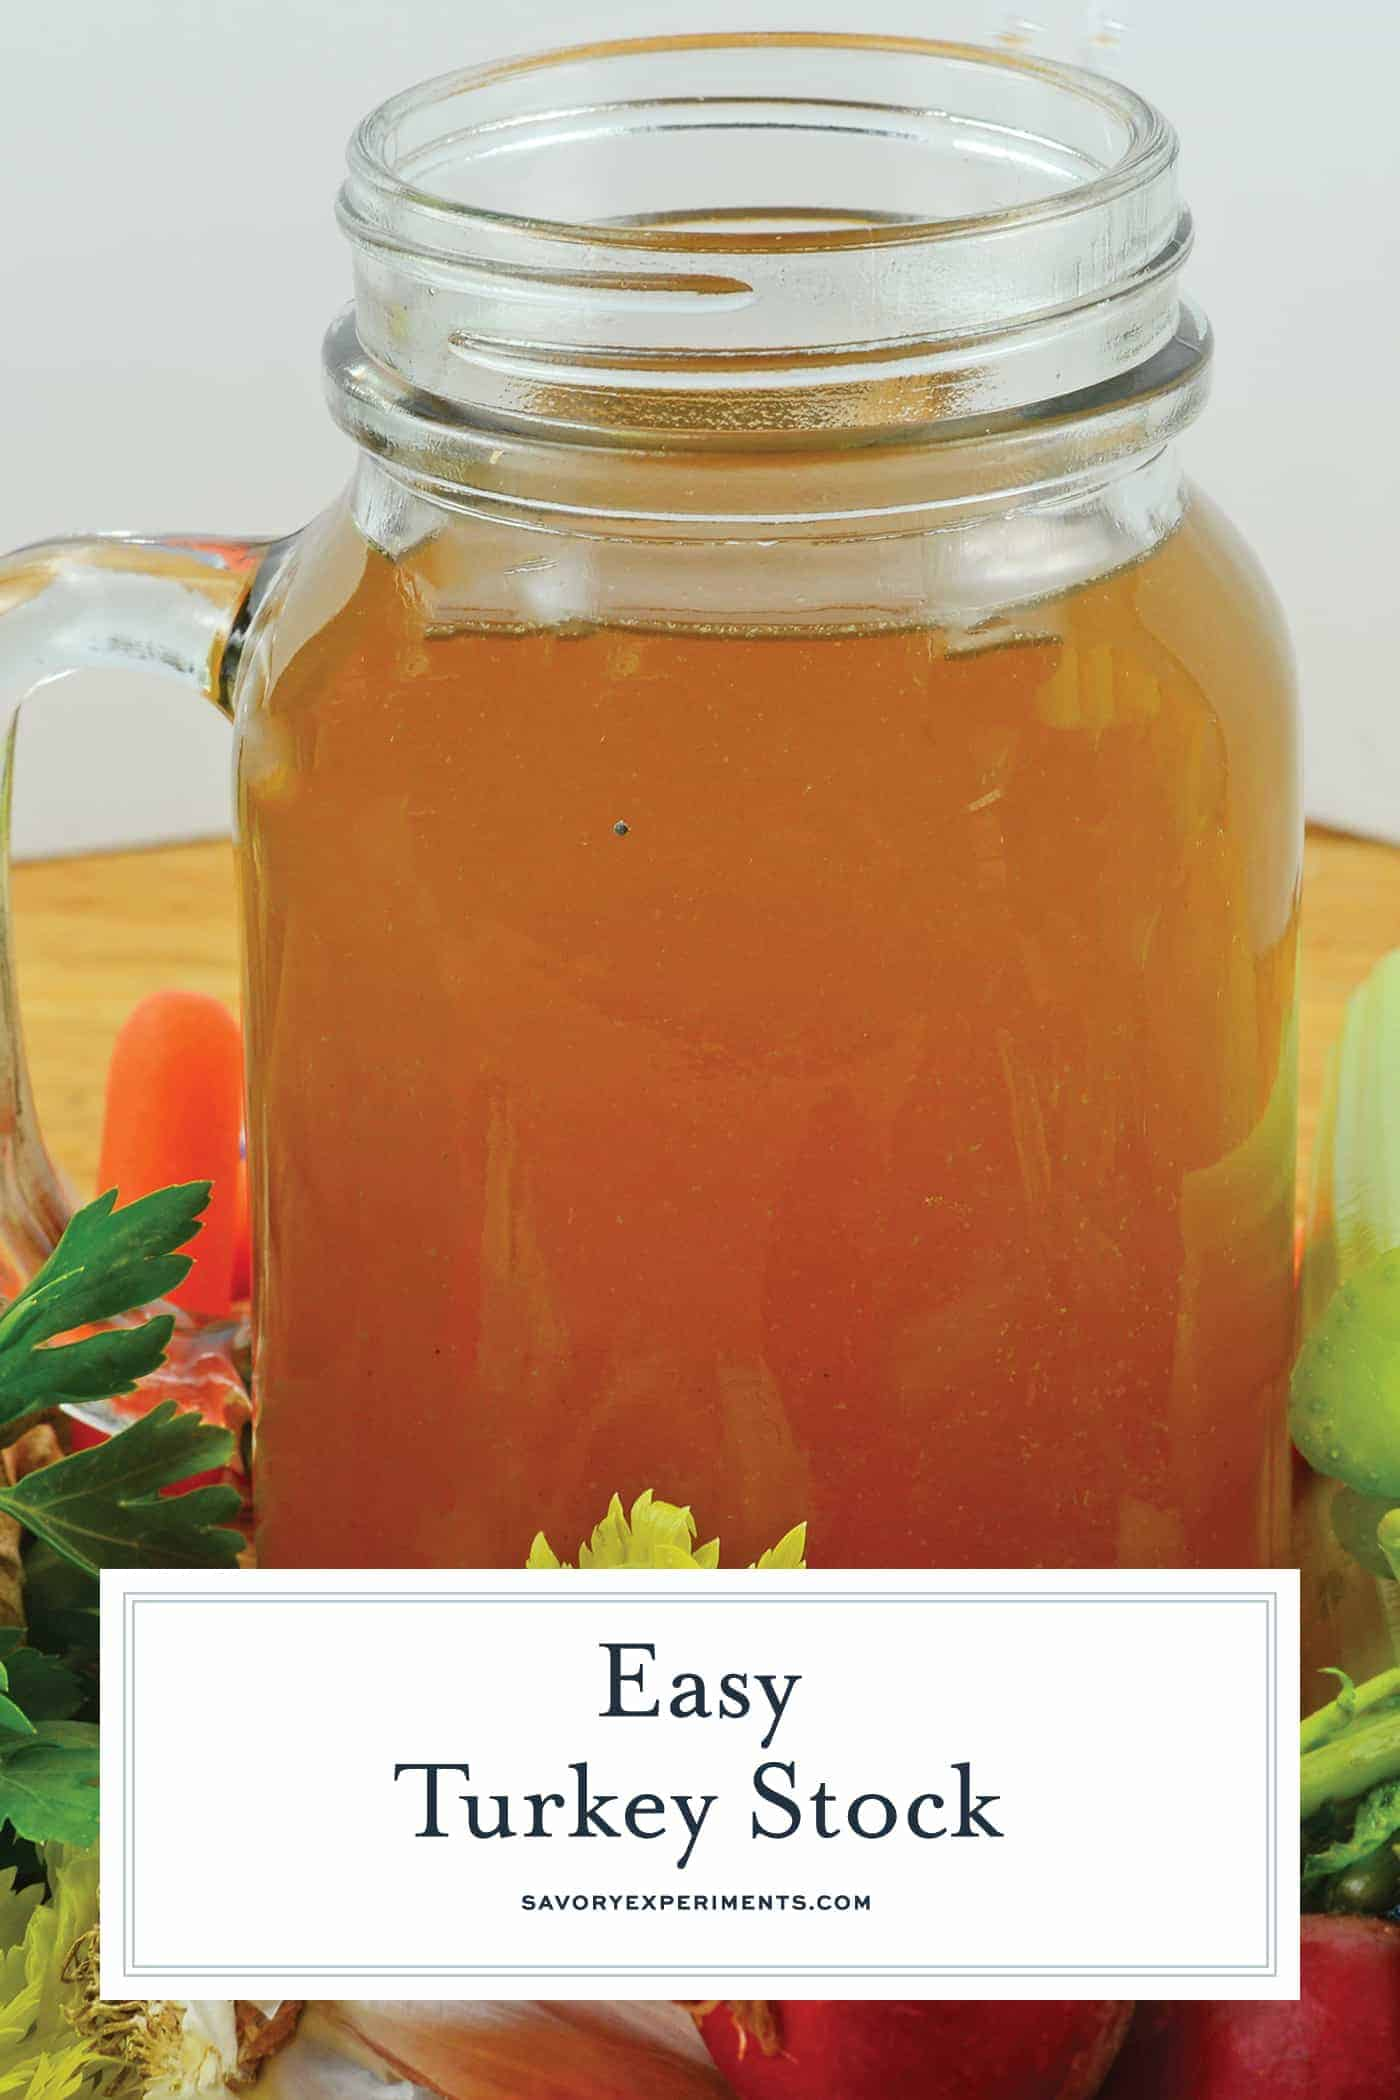 Turkey Stock is the base to a great gravy, sauce and stuffing. Make your own for robust flavor and maximum health benefits. #howtomaketurkeystock #turkeystockrecipe www.savoryexperiments.com